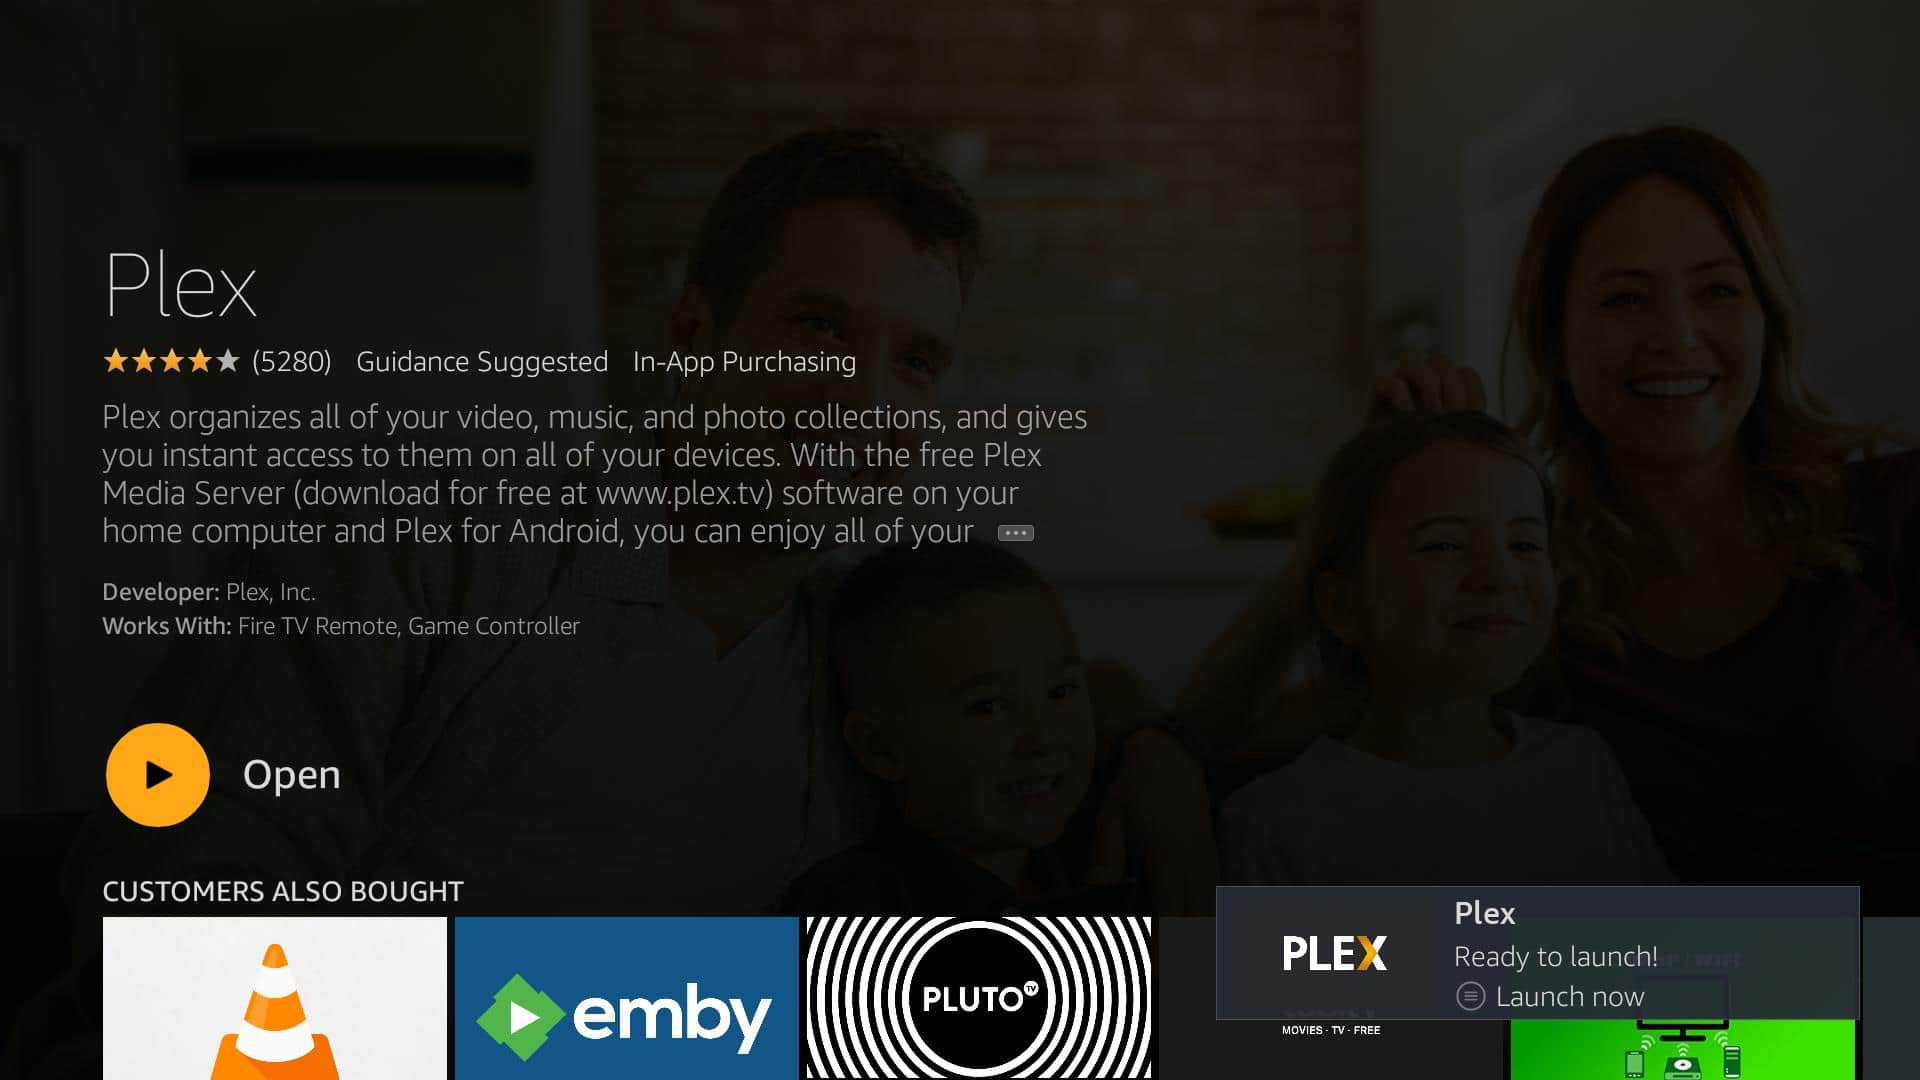 Installing and using the Fire TV Plex app | Comparitech